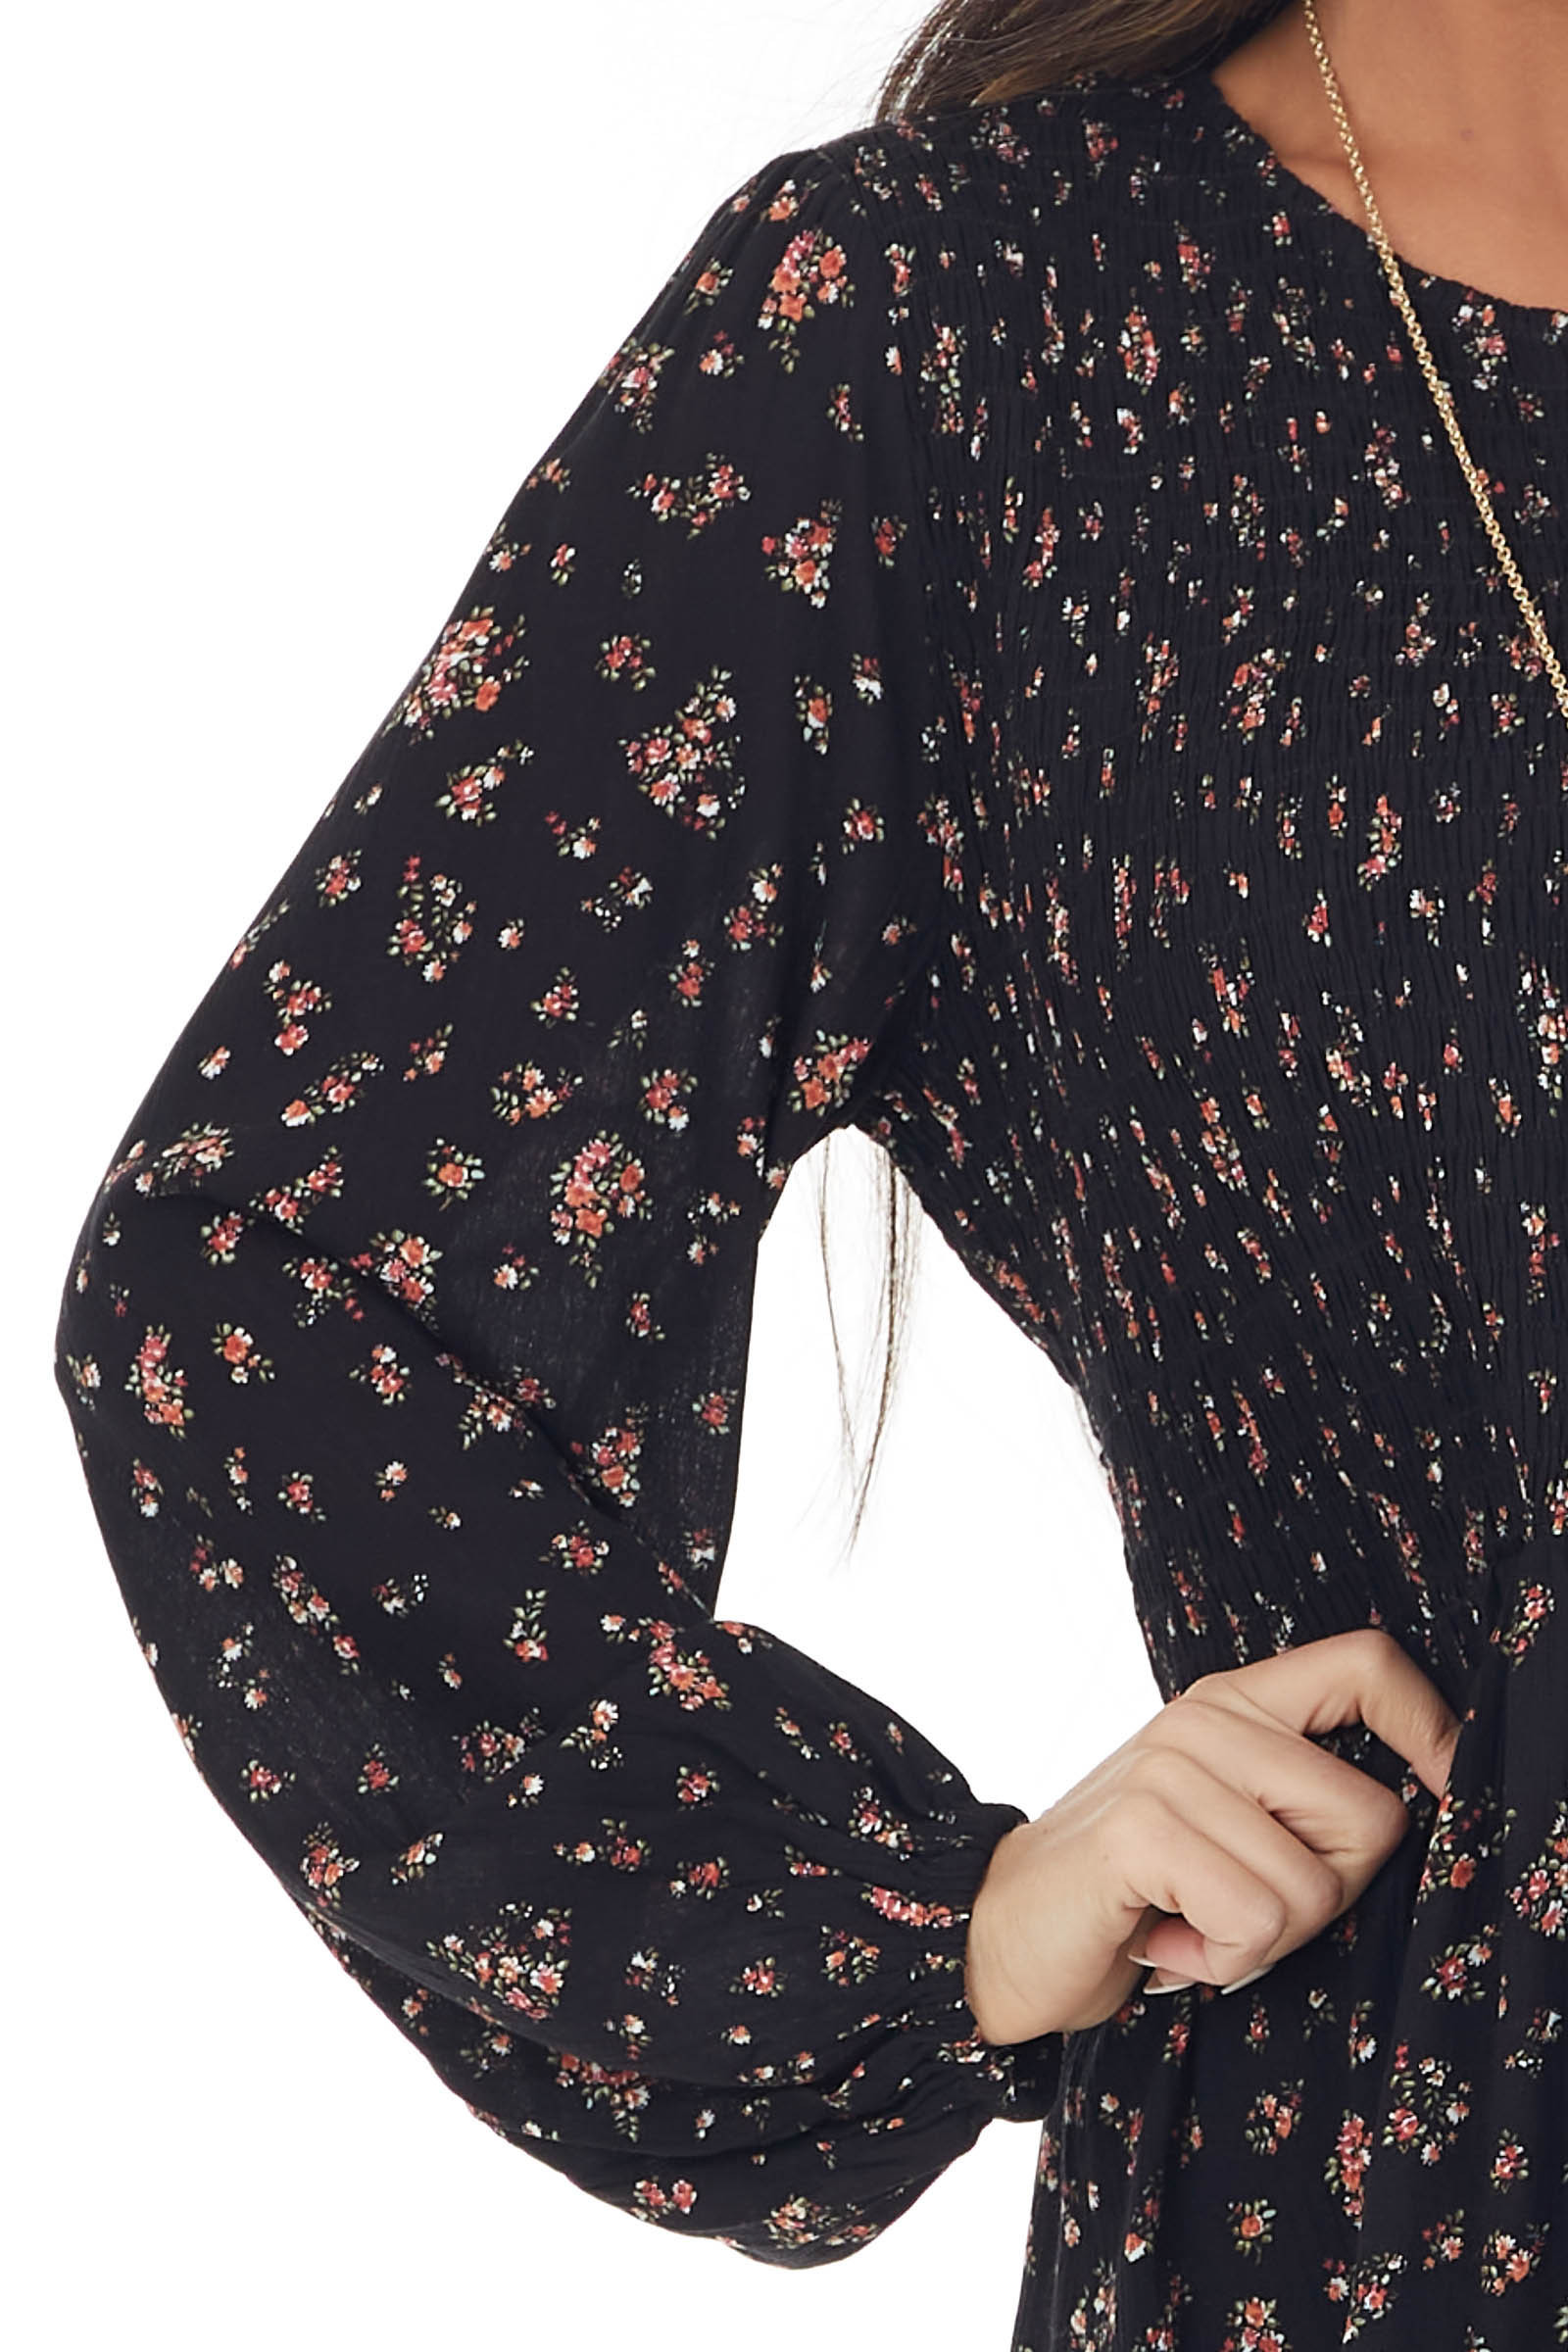 Black Floral Print Long Sleeve Smocked Woven Top